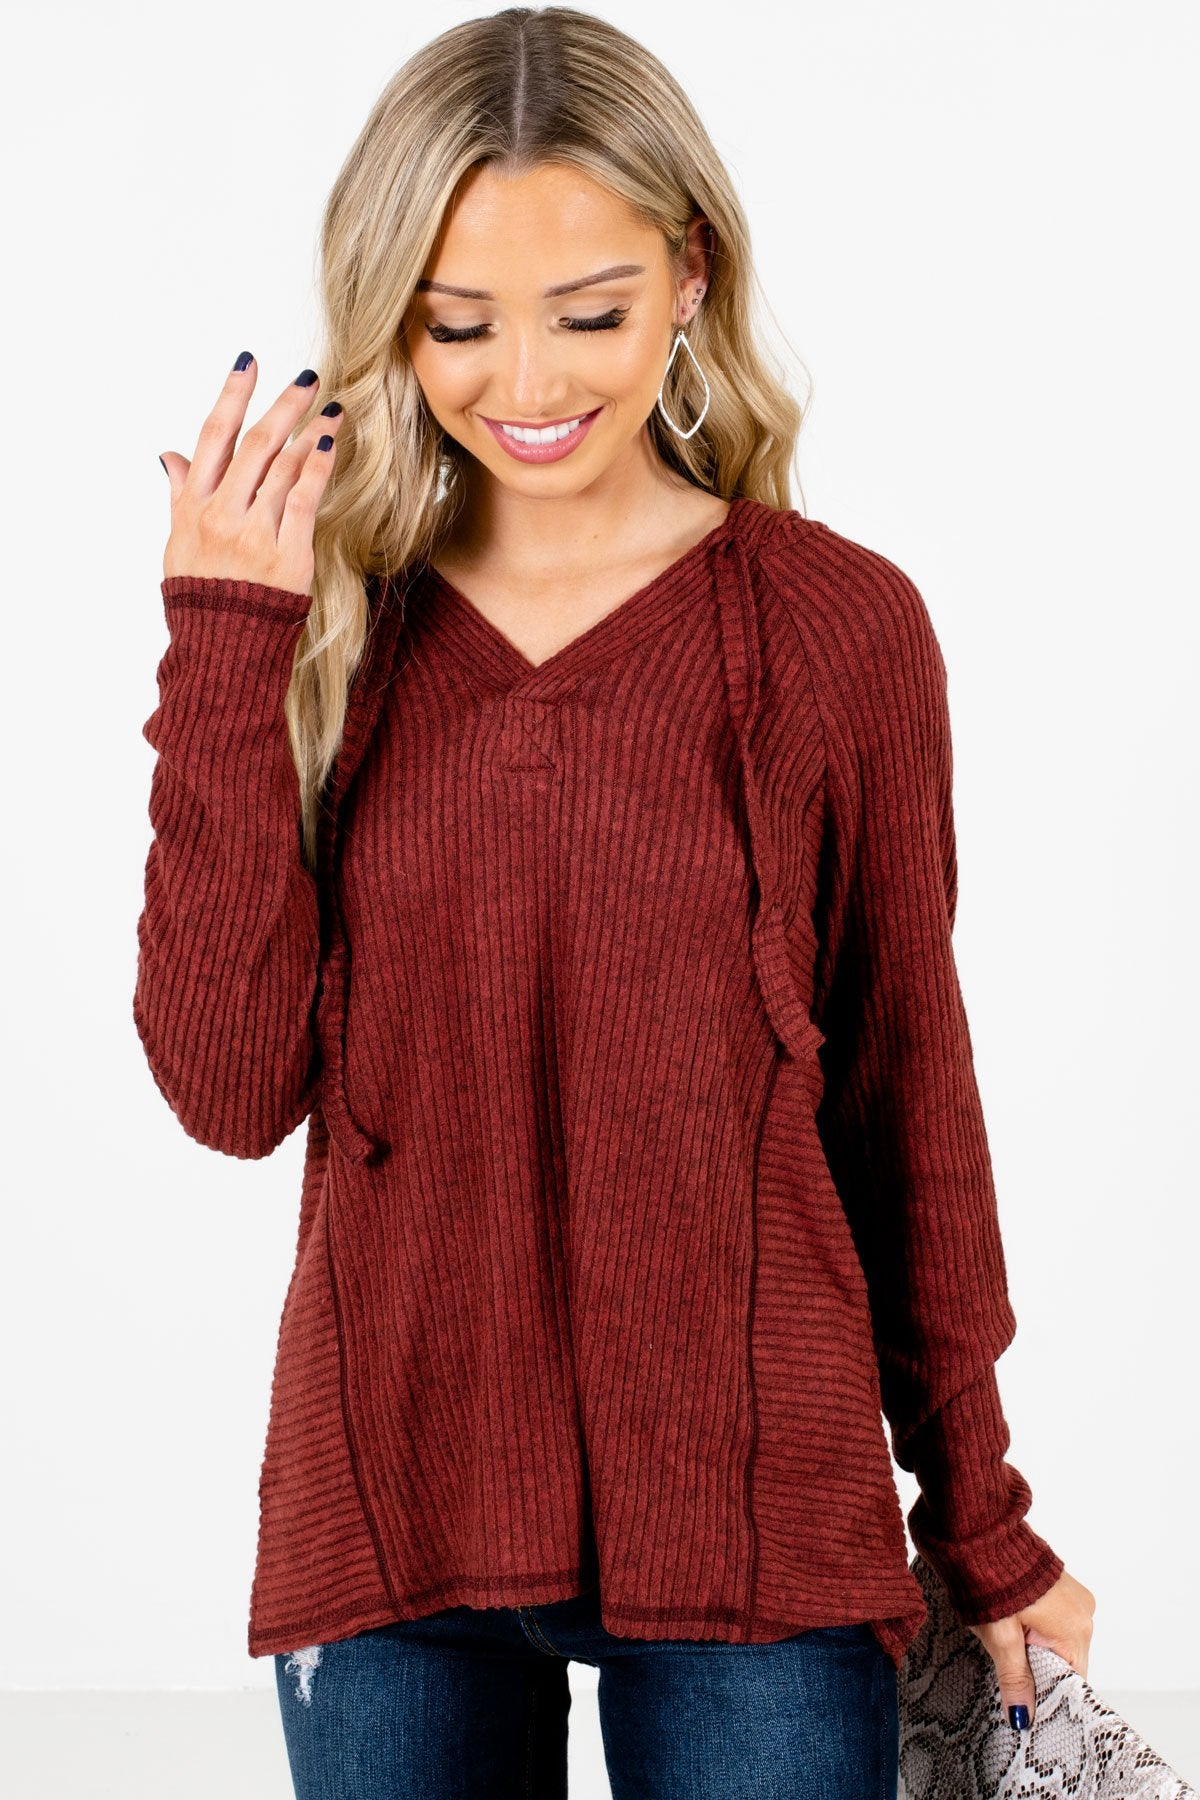 Rust Red High-Quality Ribbed Material Boutique Hoodies for Women